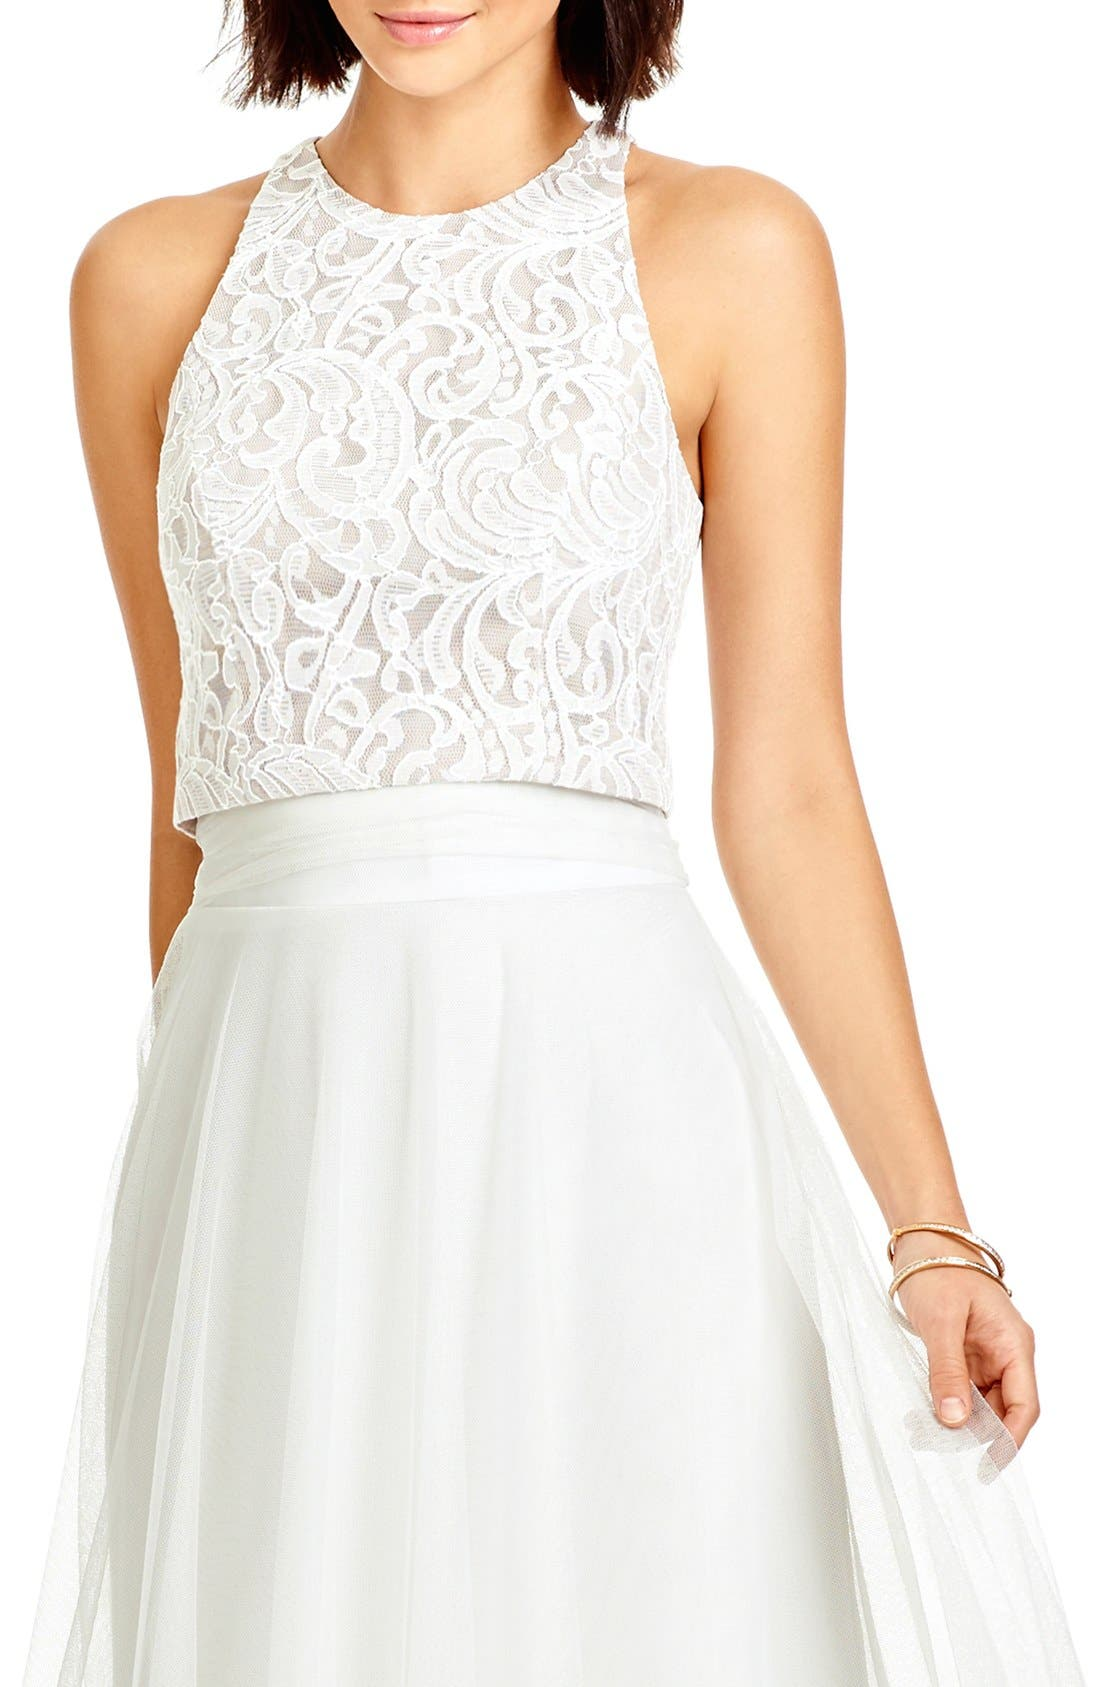 DESSY COLLECTION, Lace Halter Style Crop Top, Alternate thumbnail 4, color, IVORY LACE/ TOPAZ/ IVORY